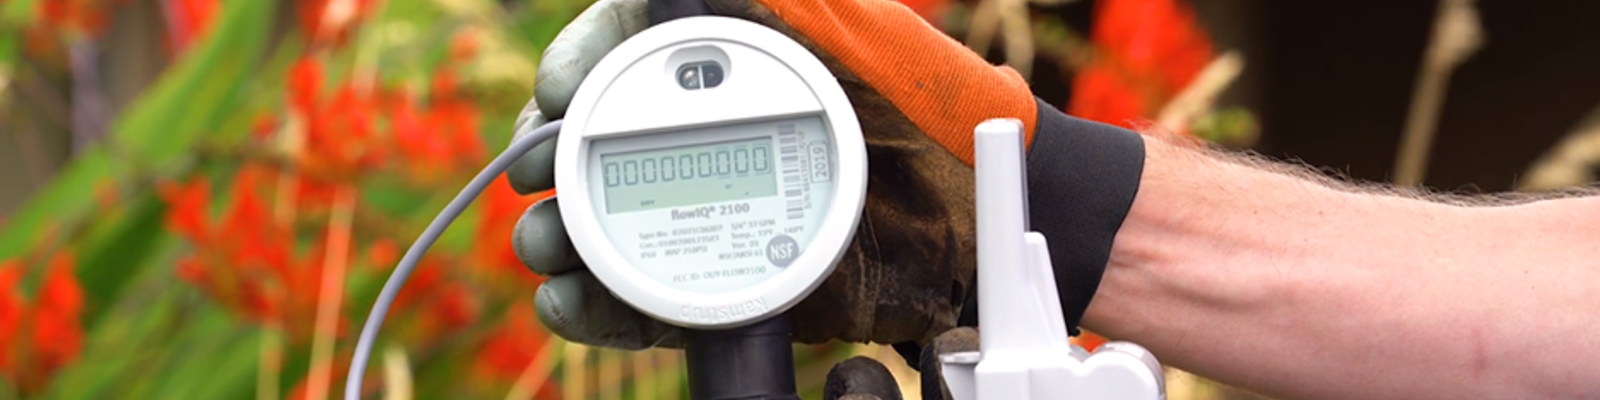 Hand holding a smart water meter ratio transmitter device